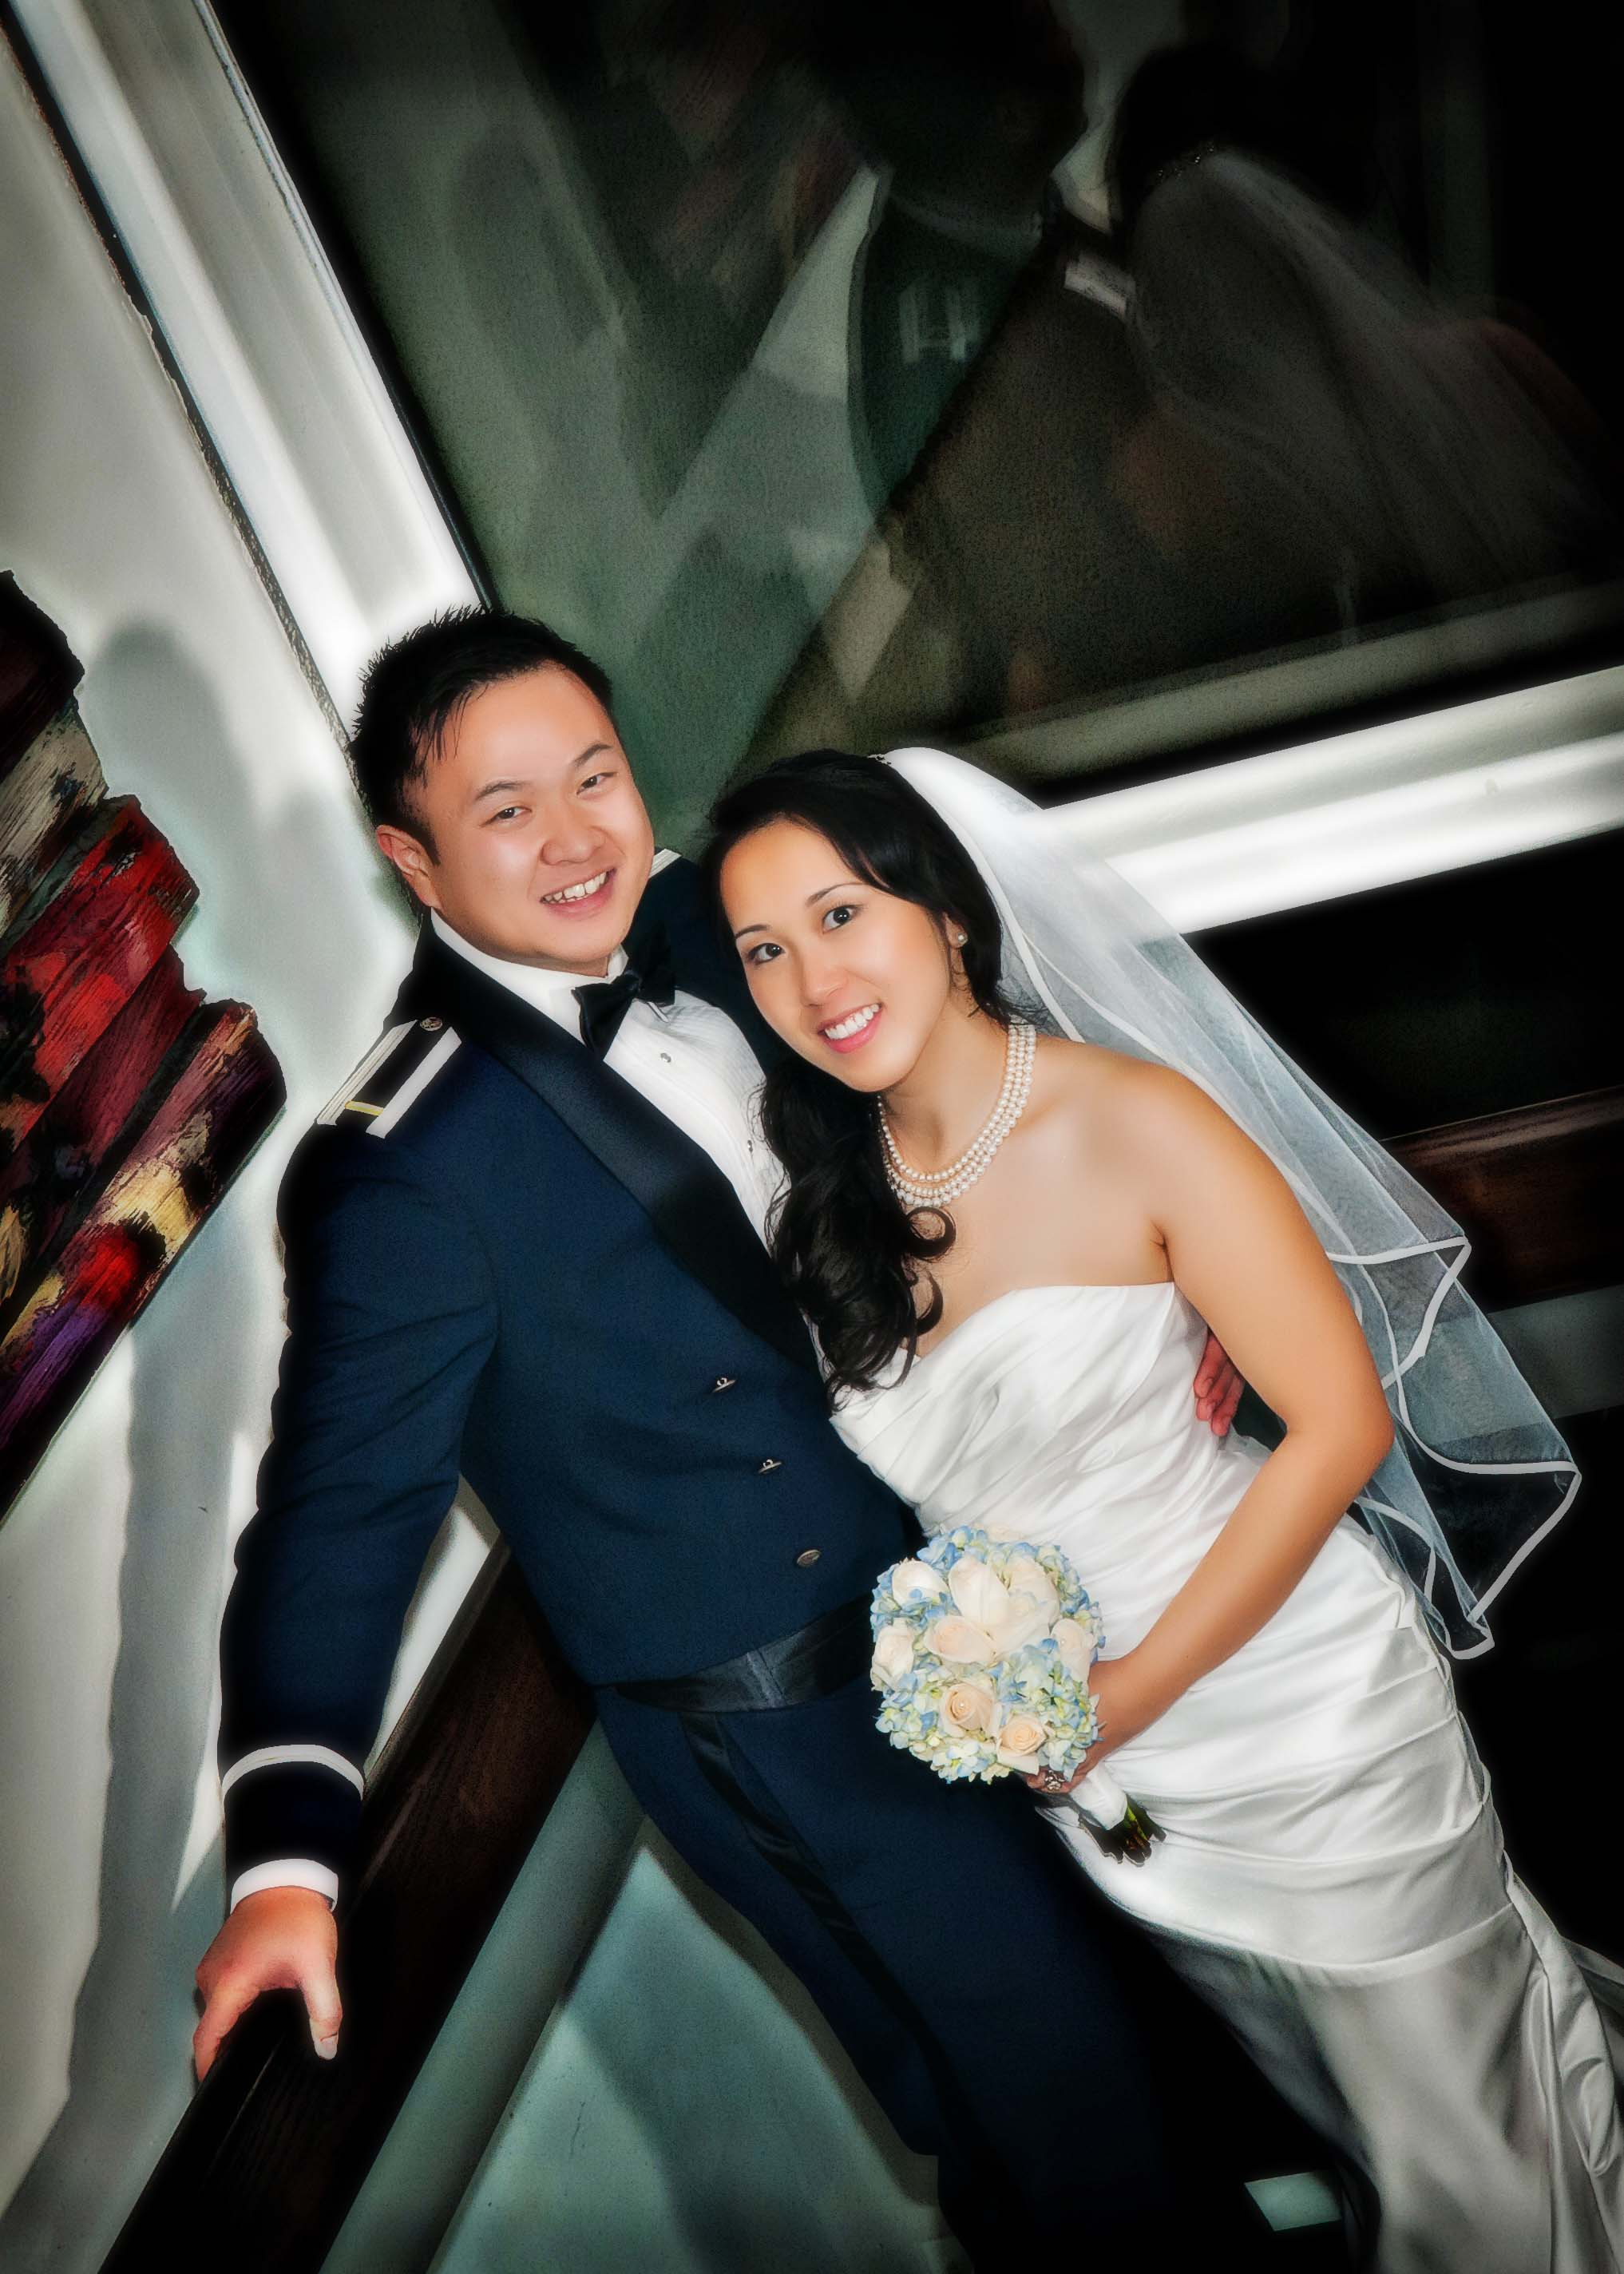 Wedding Video And Photography